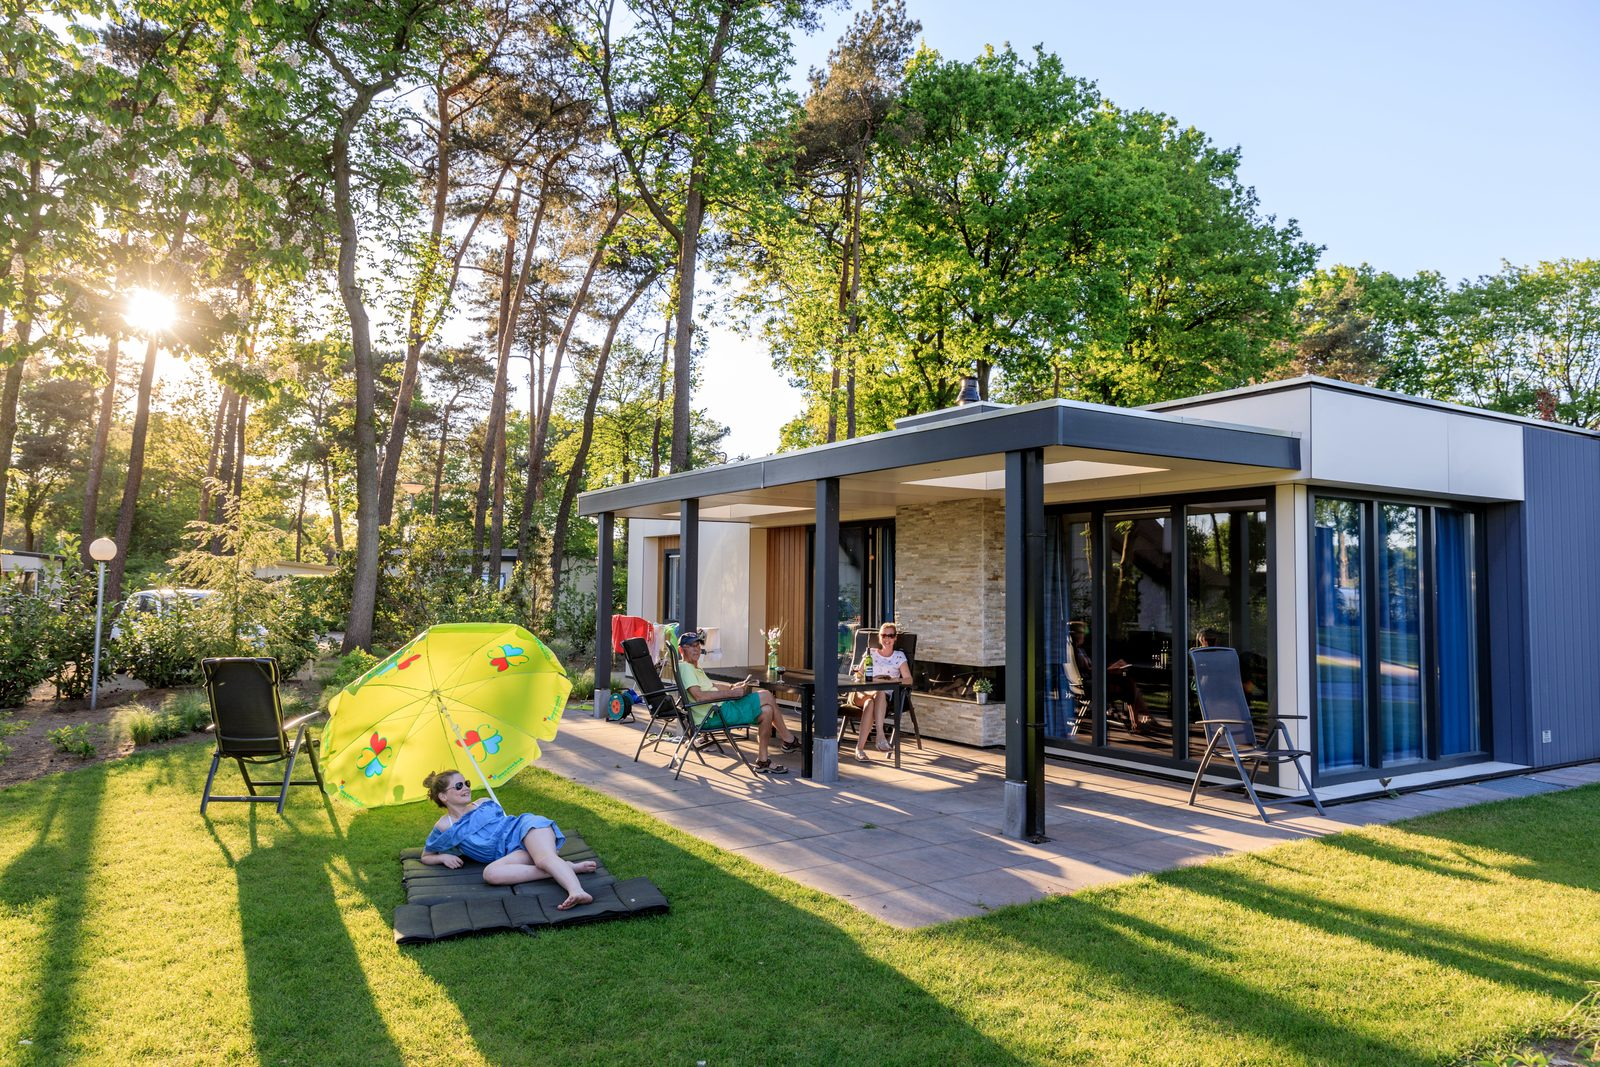 Bungalow on the Veluwe